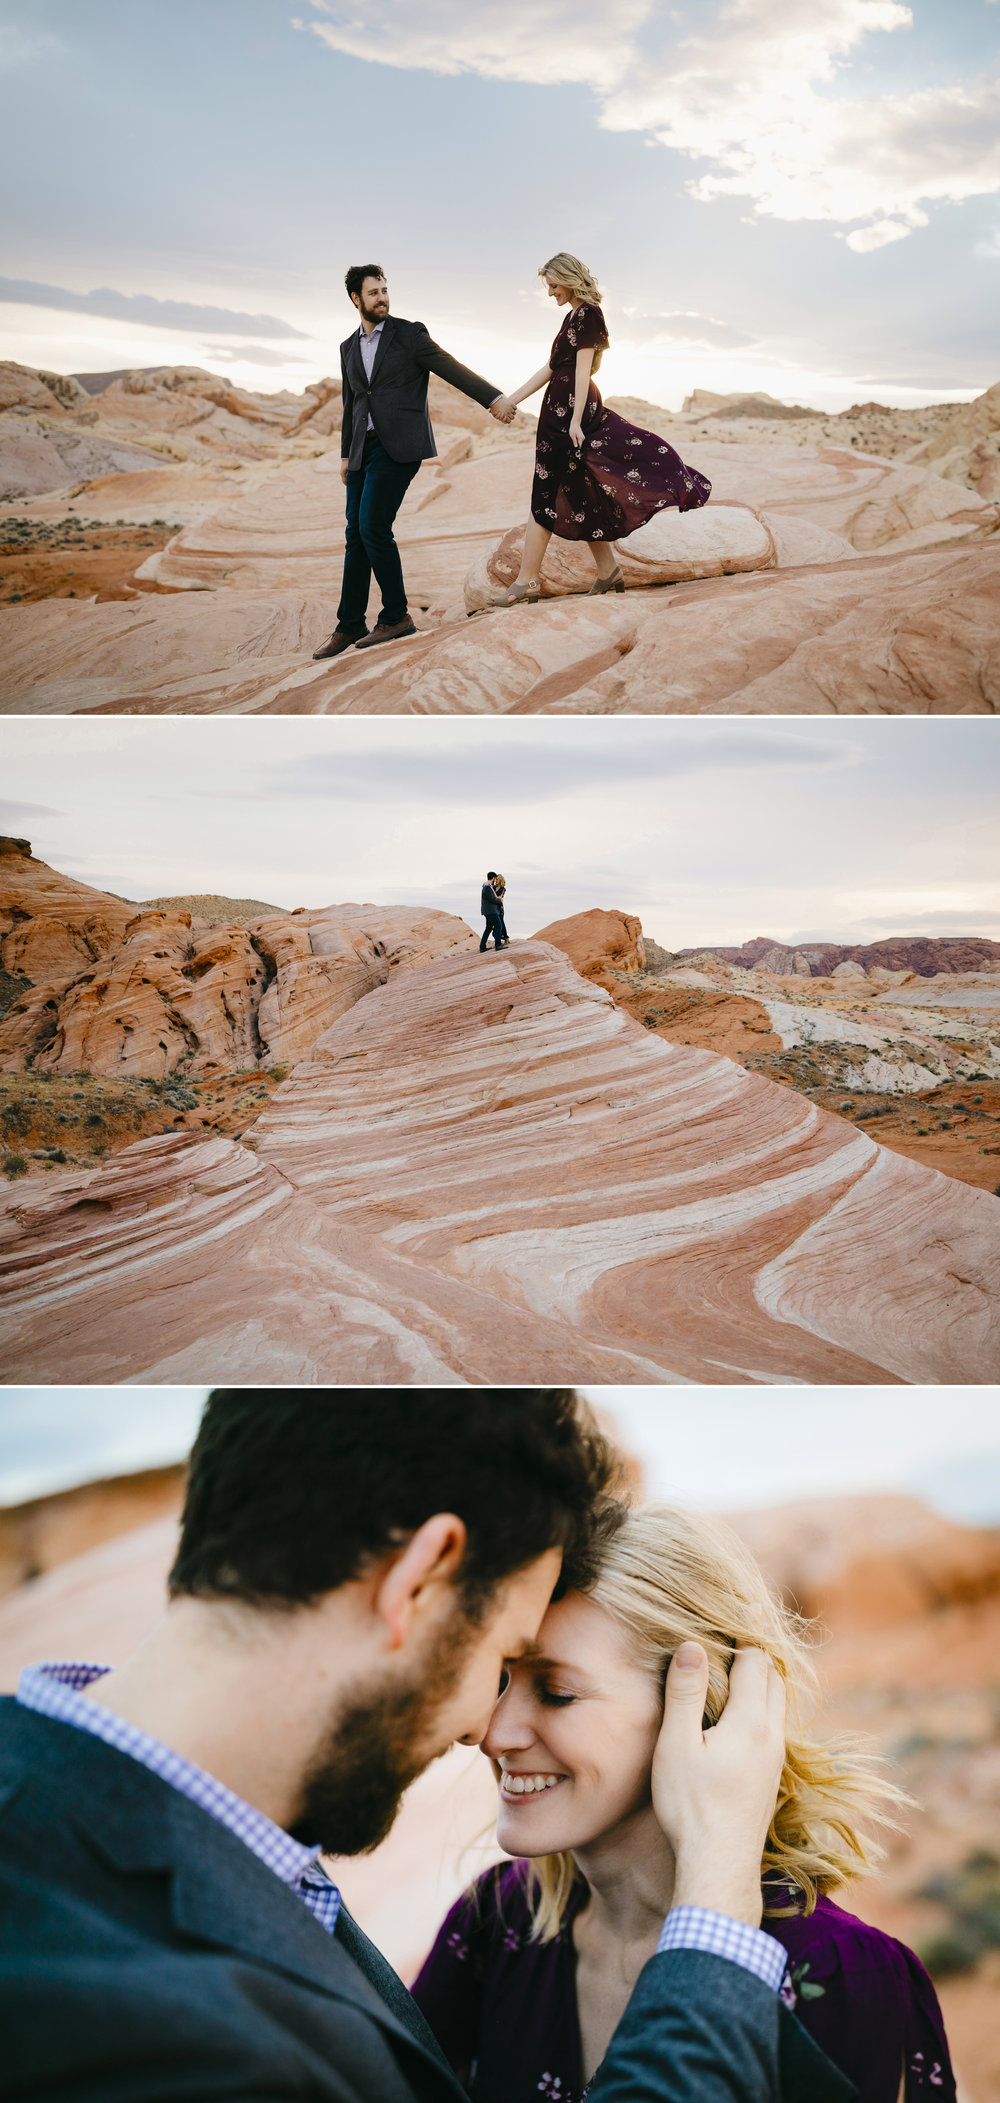 Valley-of-Fire-Couples-Adventure-Engagement-Photography.jpg